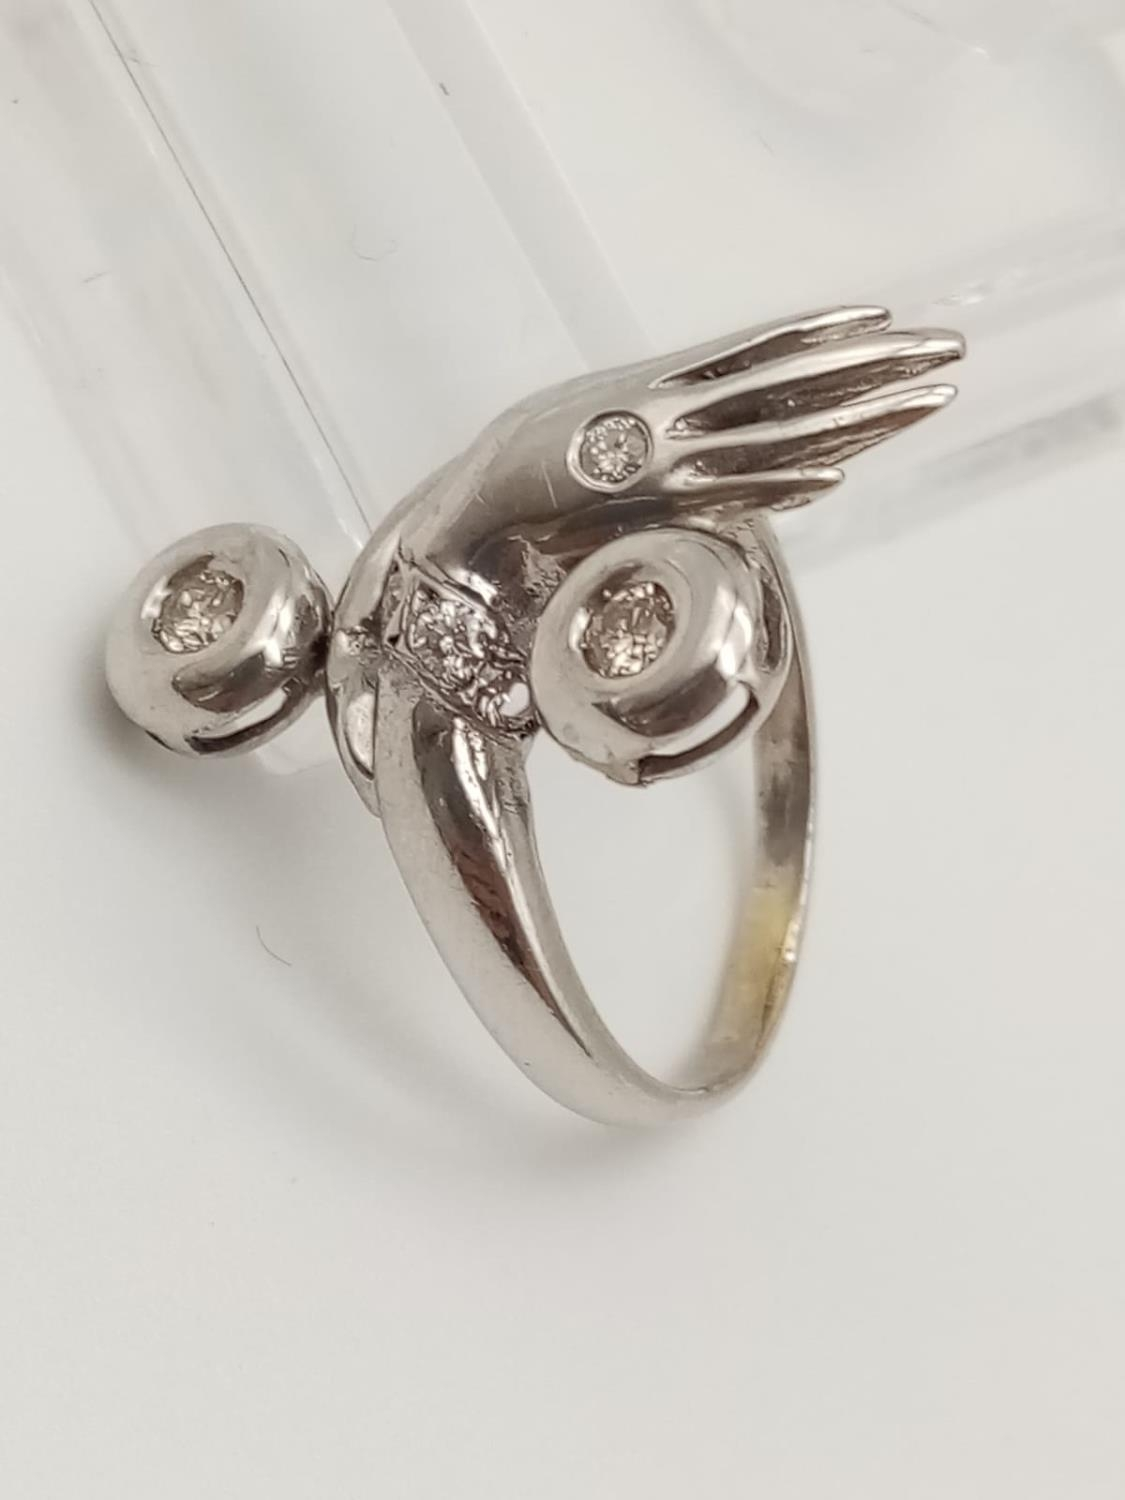 14k white gold diamond set ring in an unusual shape of a hand, weight 5.4g size M1/2 - Image 2 of 4